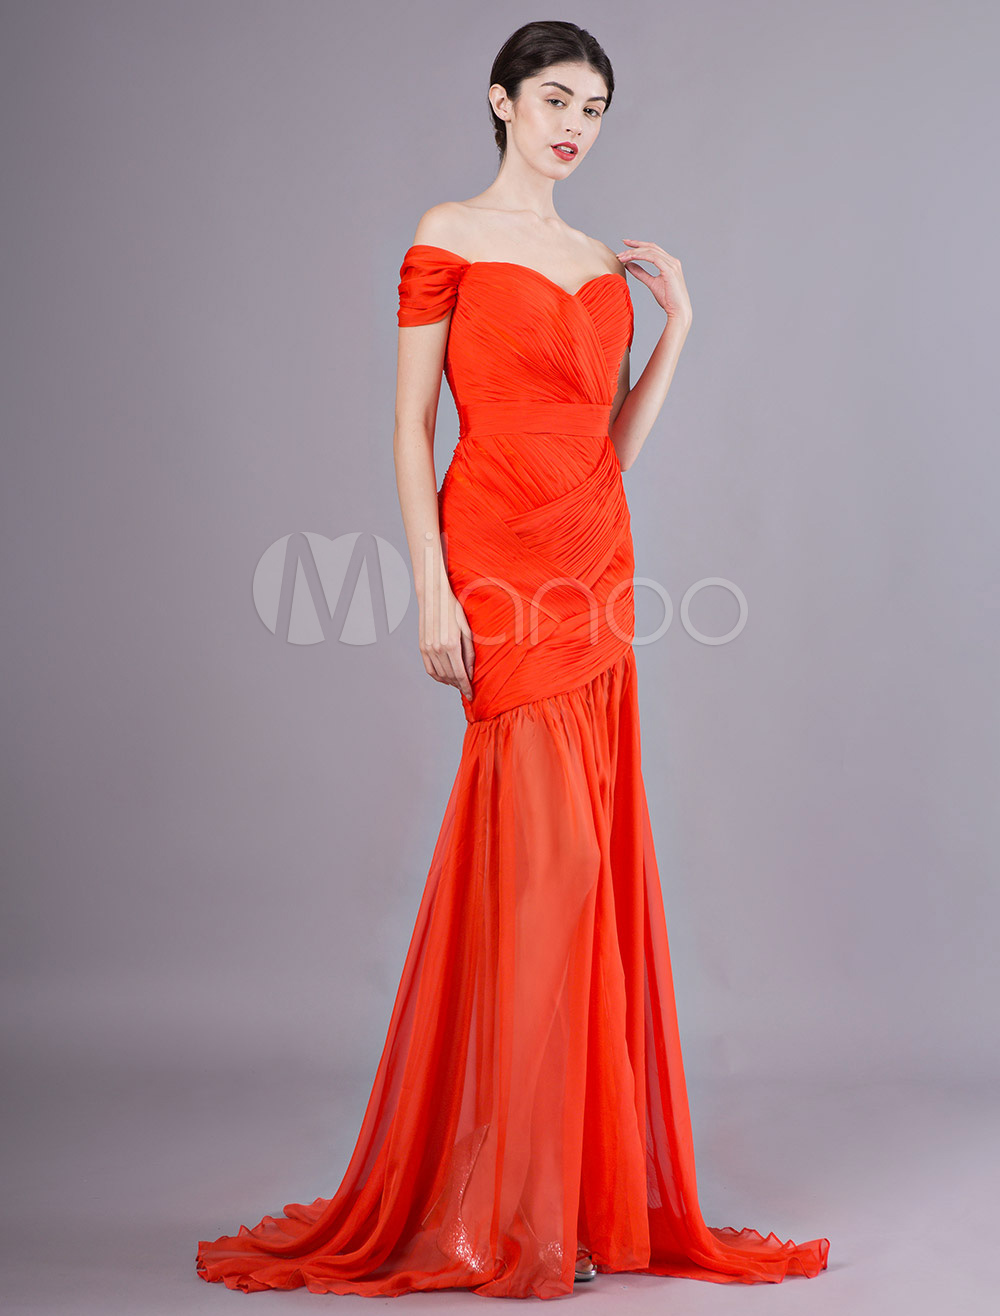 5dbb362a3c4 Evening Dresses Off The Shoulder Orange Red Pleated Mermaid Prom Dress With  Train-No.